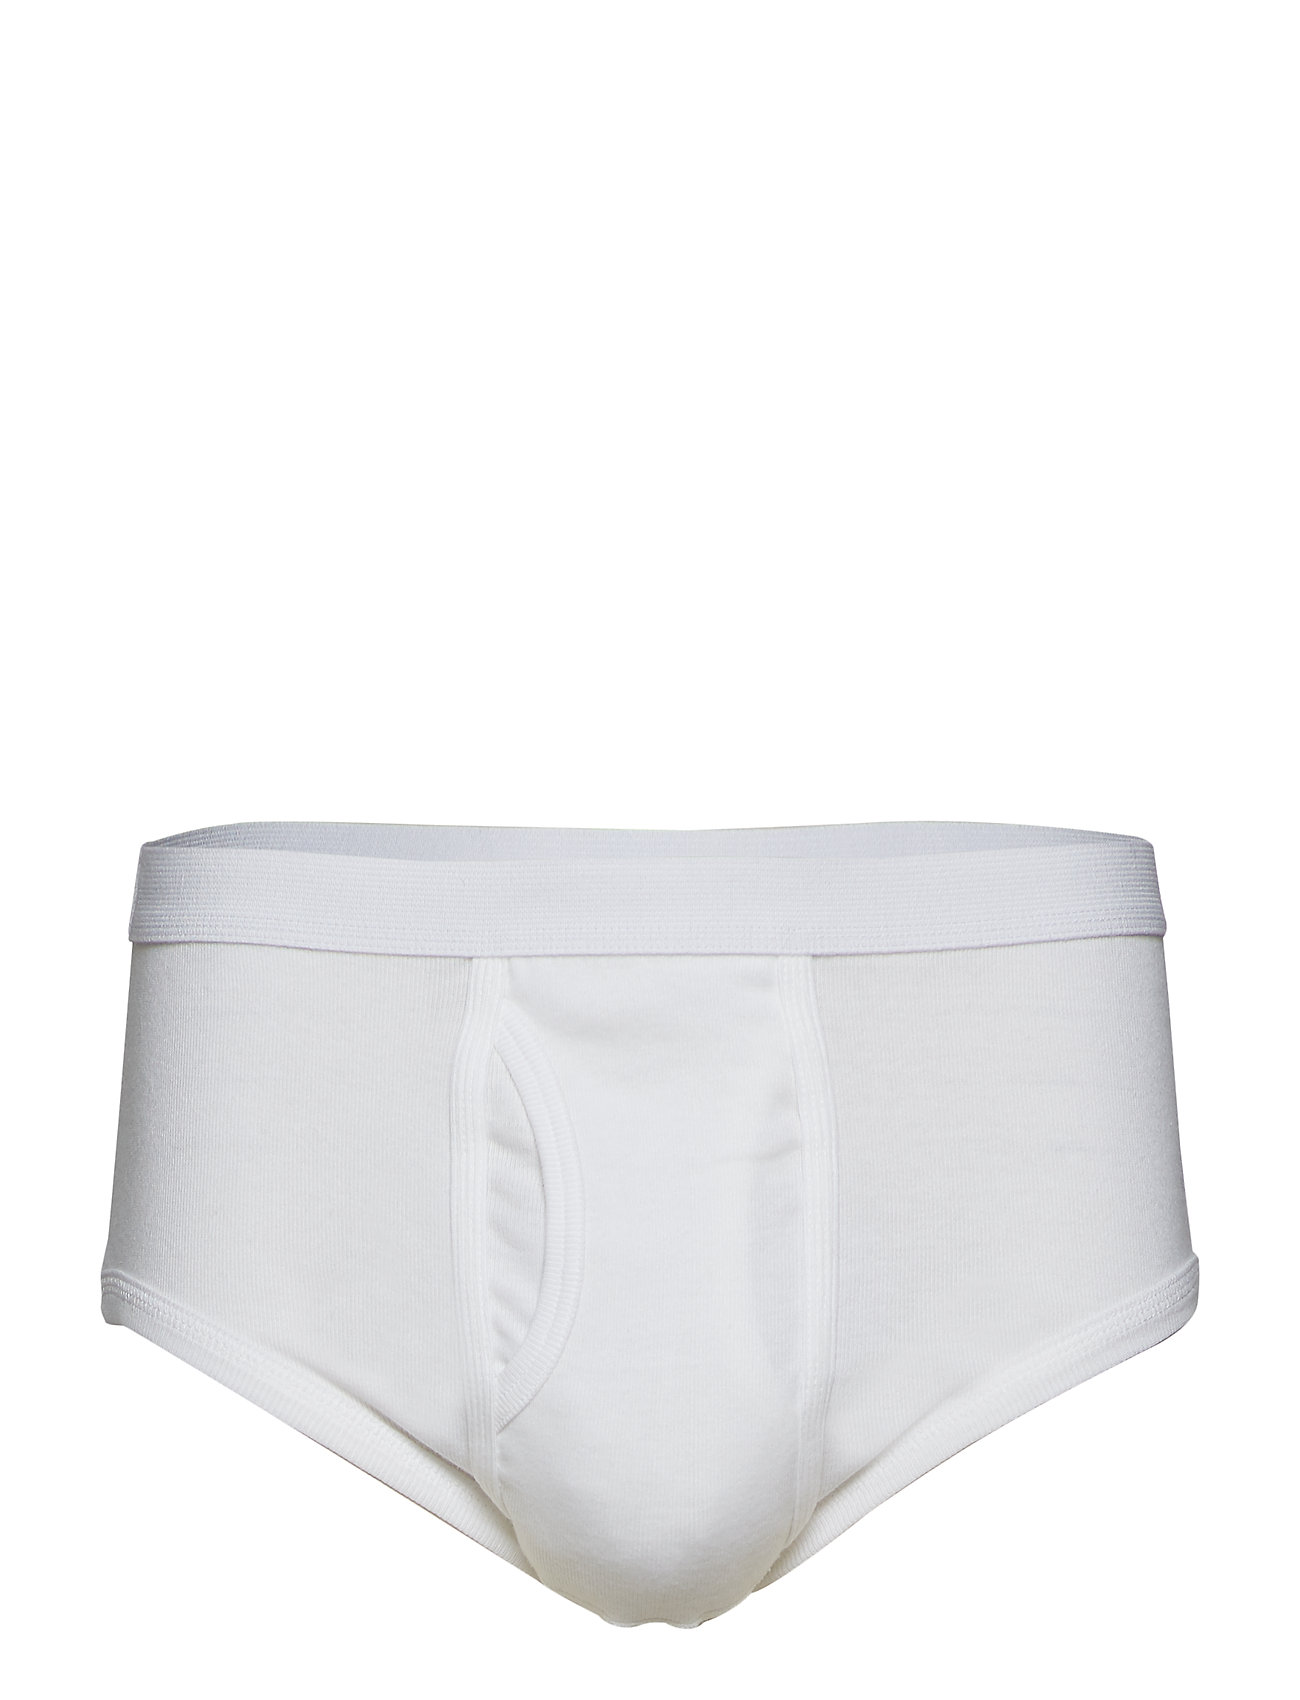 JBS Original briefs - WHITE